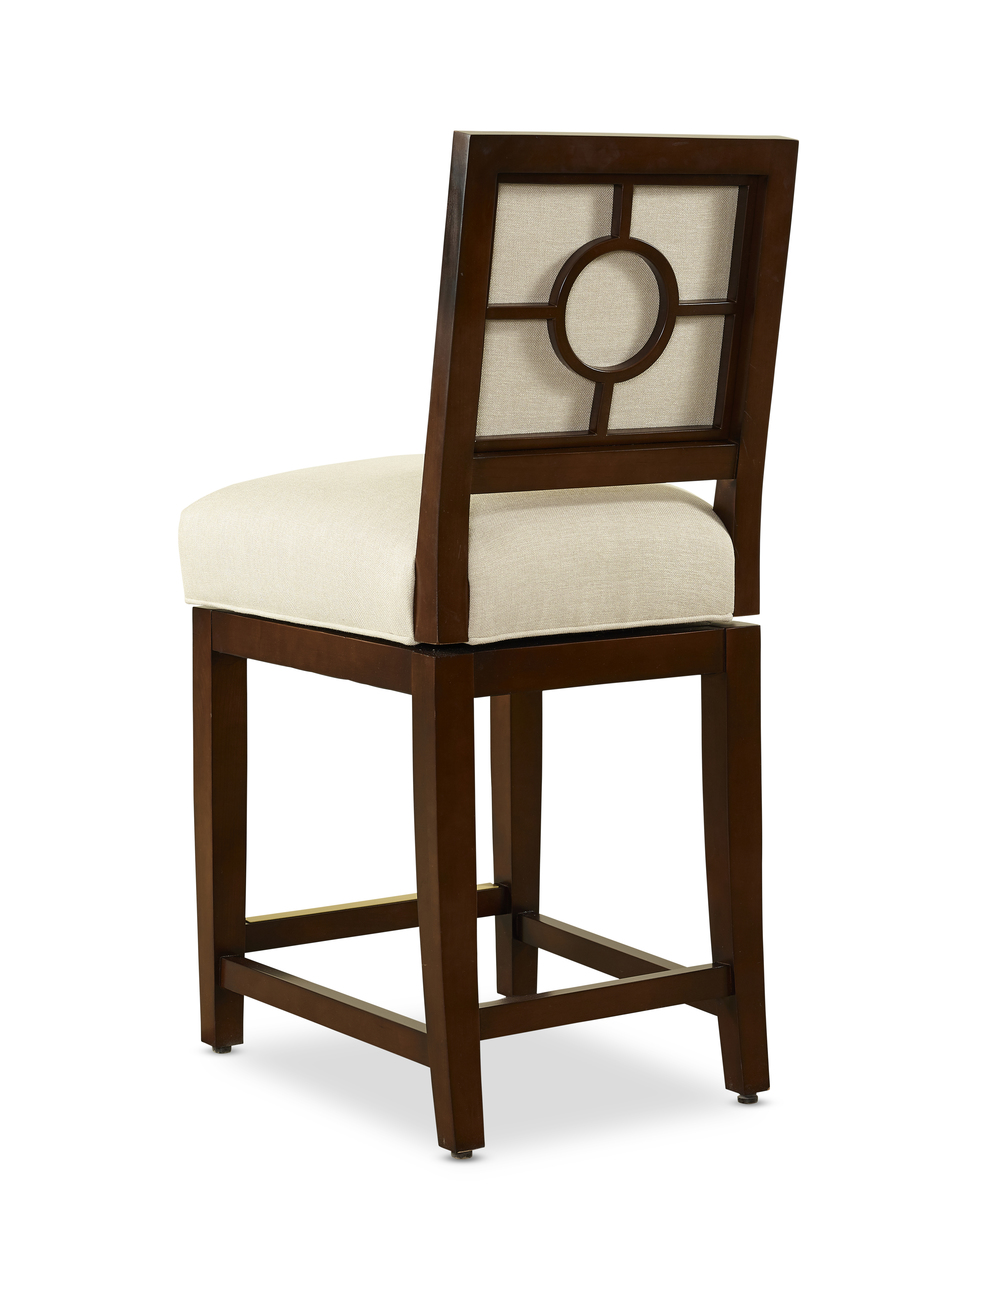 Designmaster Furniture - Allendale Counter Stool